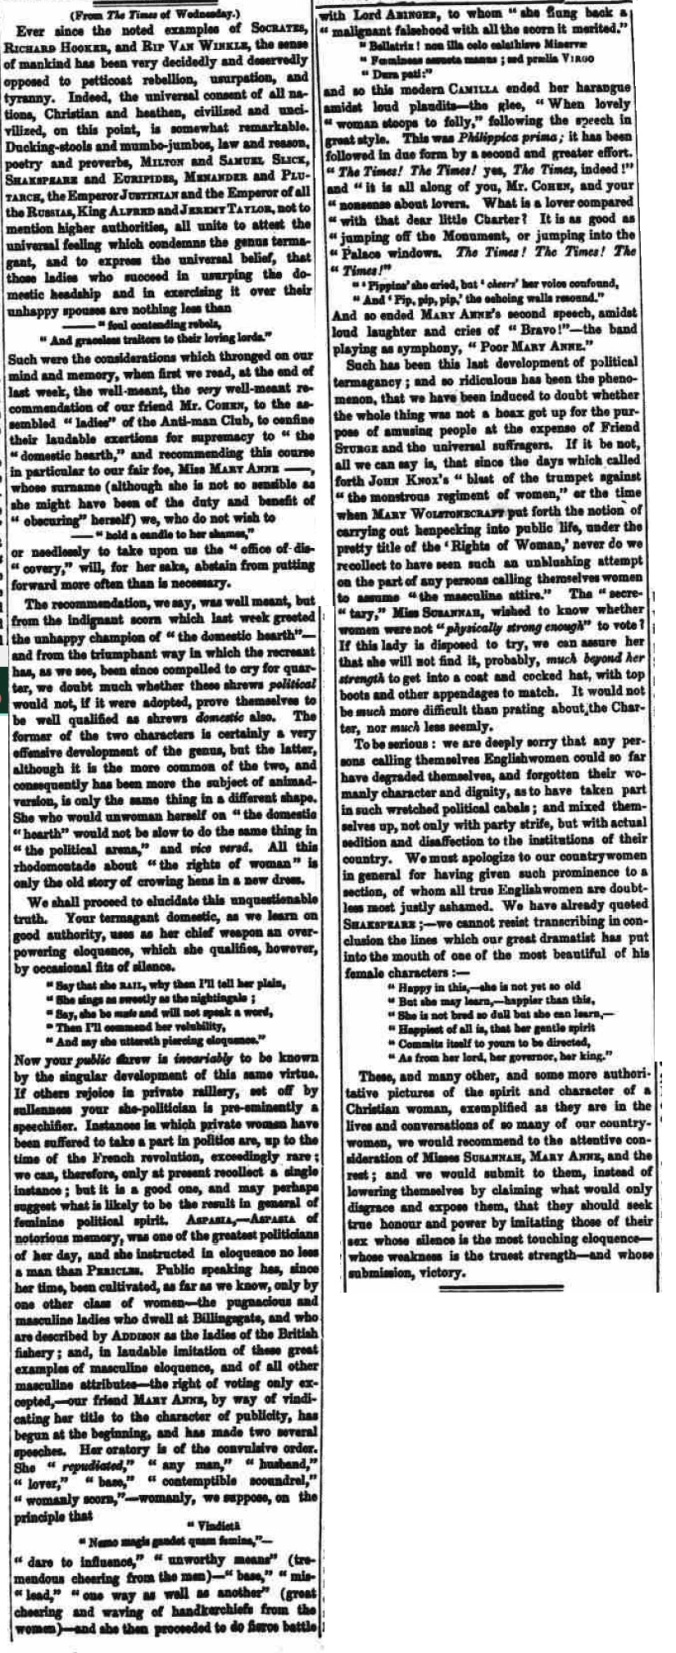 Anti-Man movement - Evening Mail - Wednesday 26 October 1842